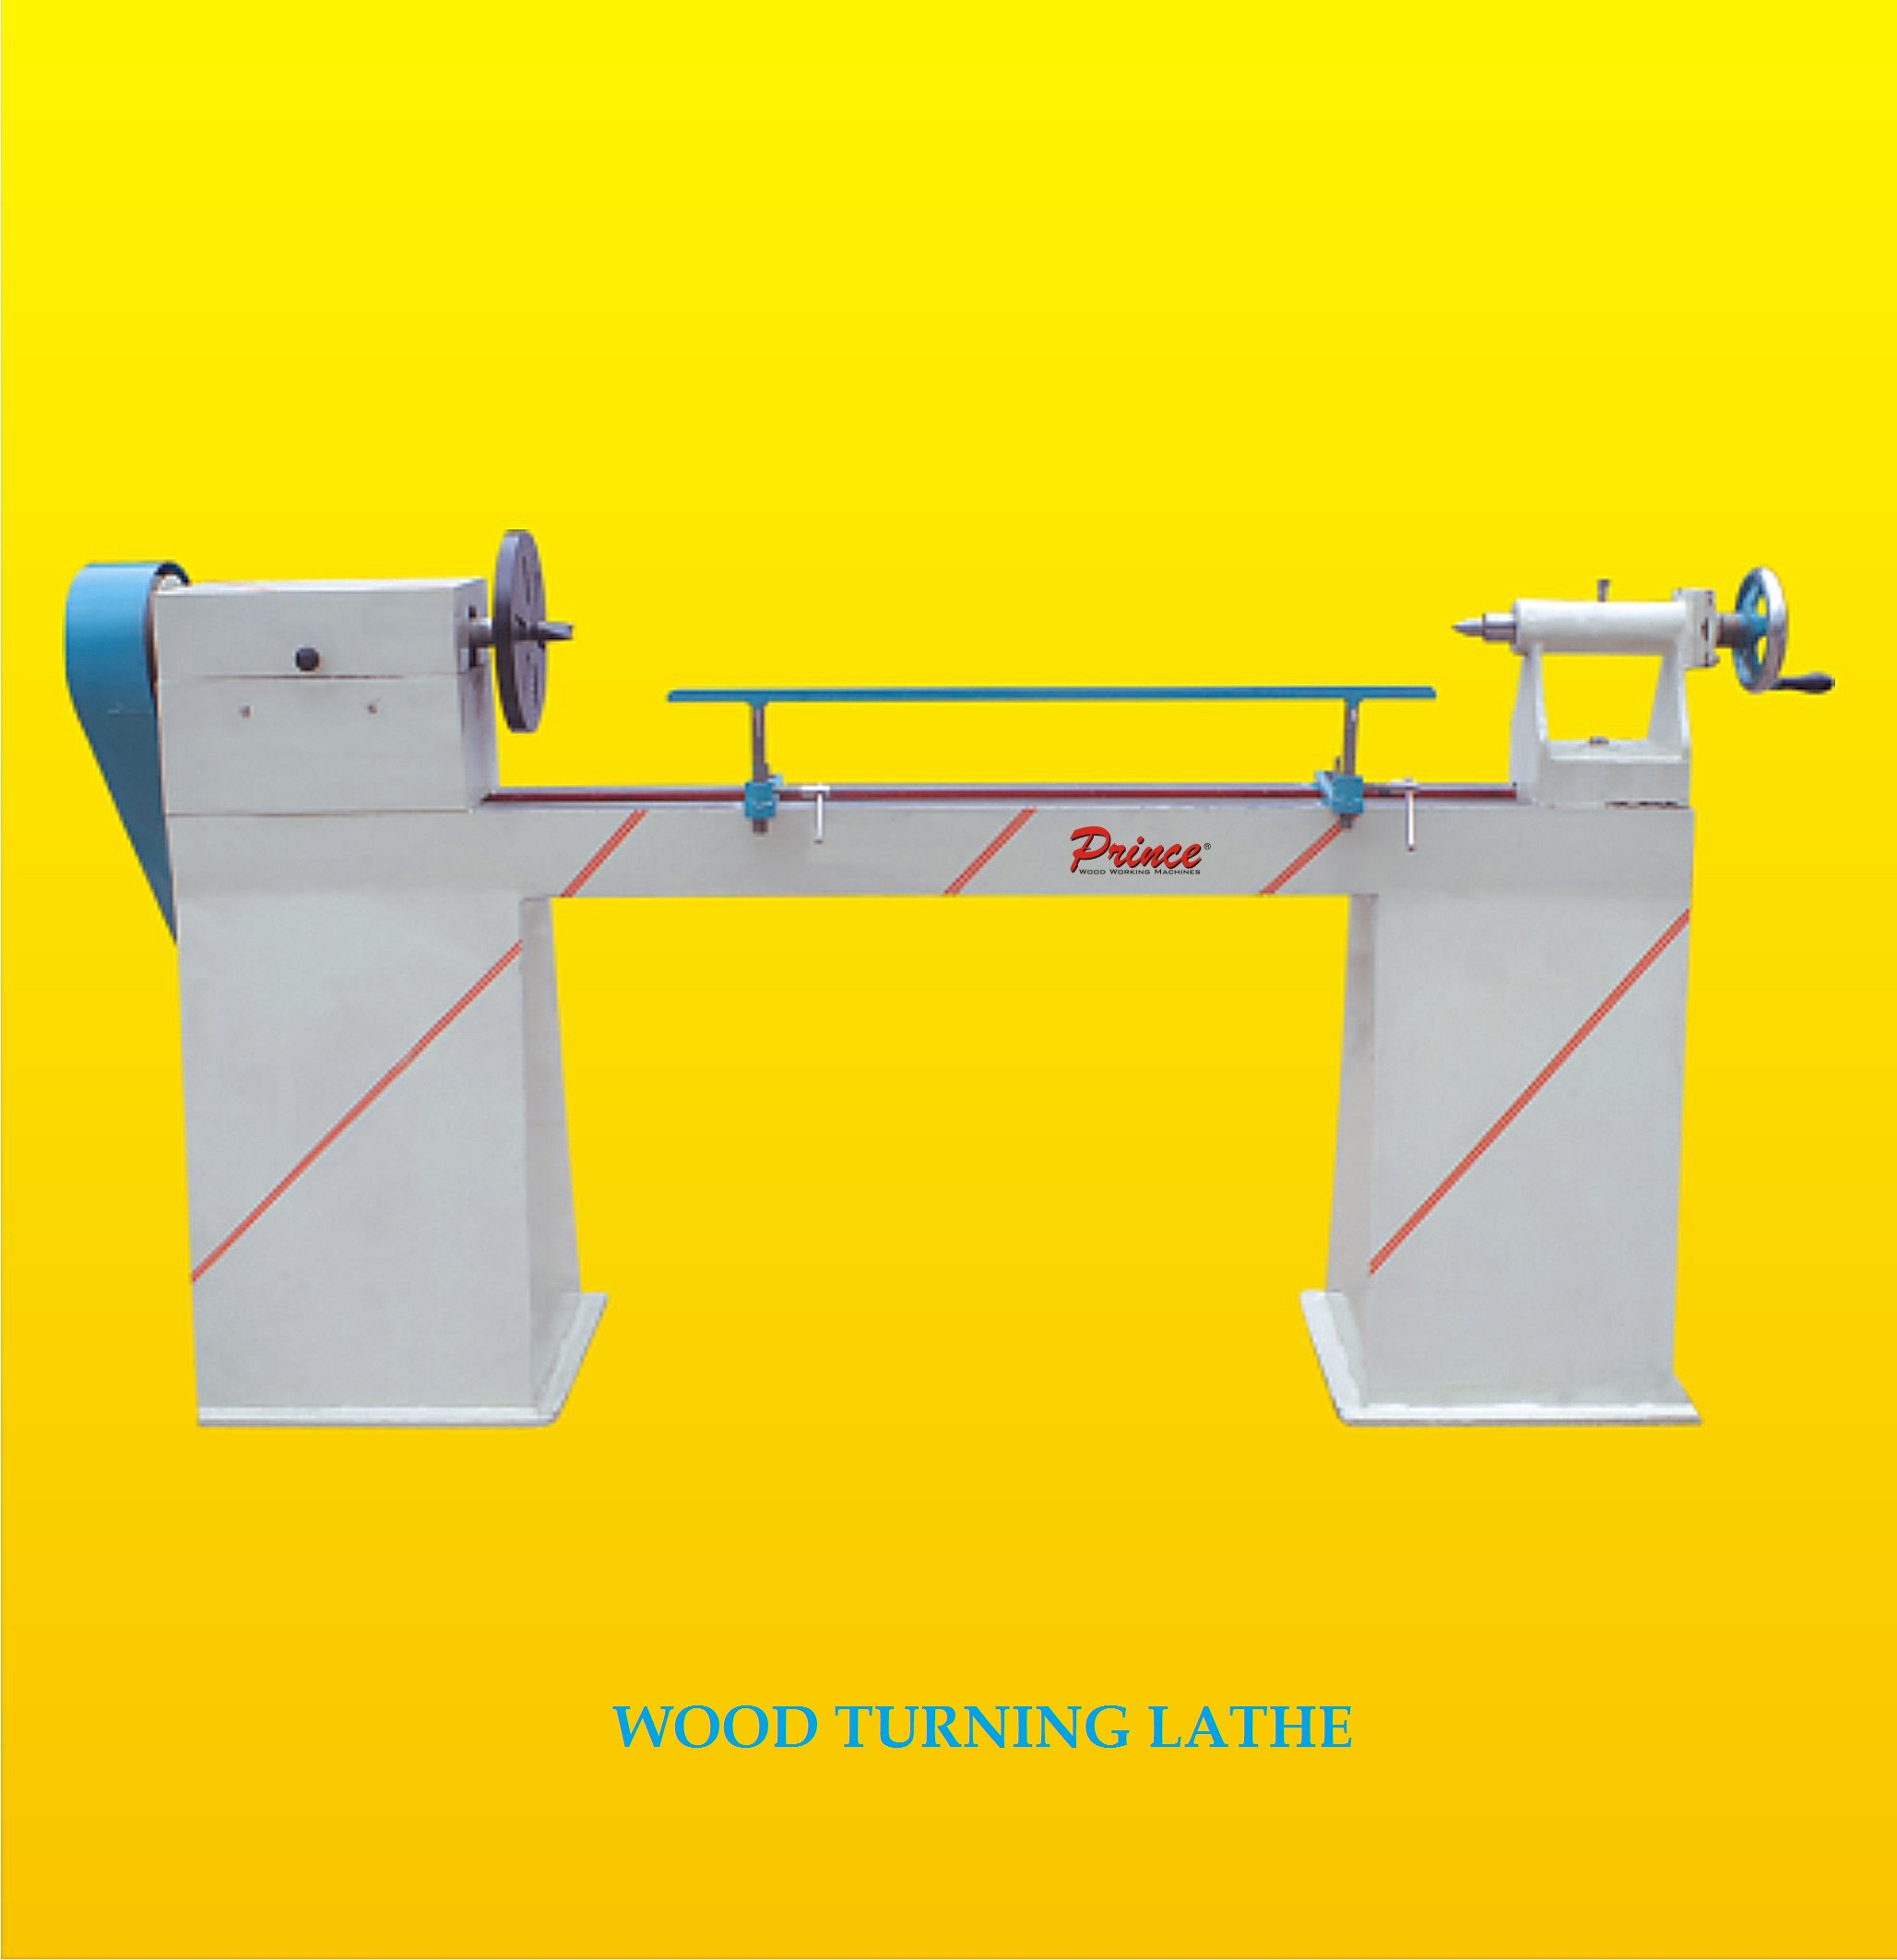 Wood Turning Lathe Machine